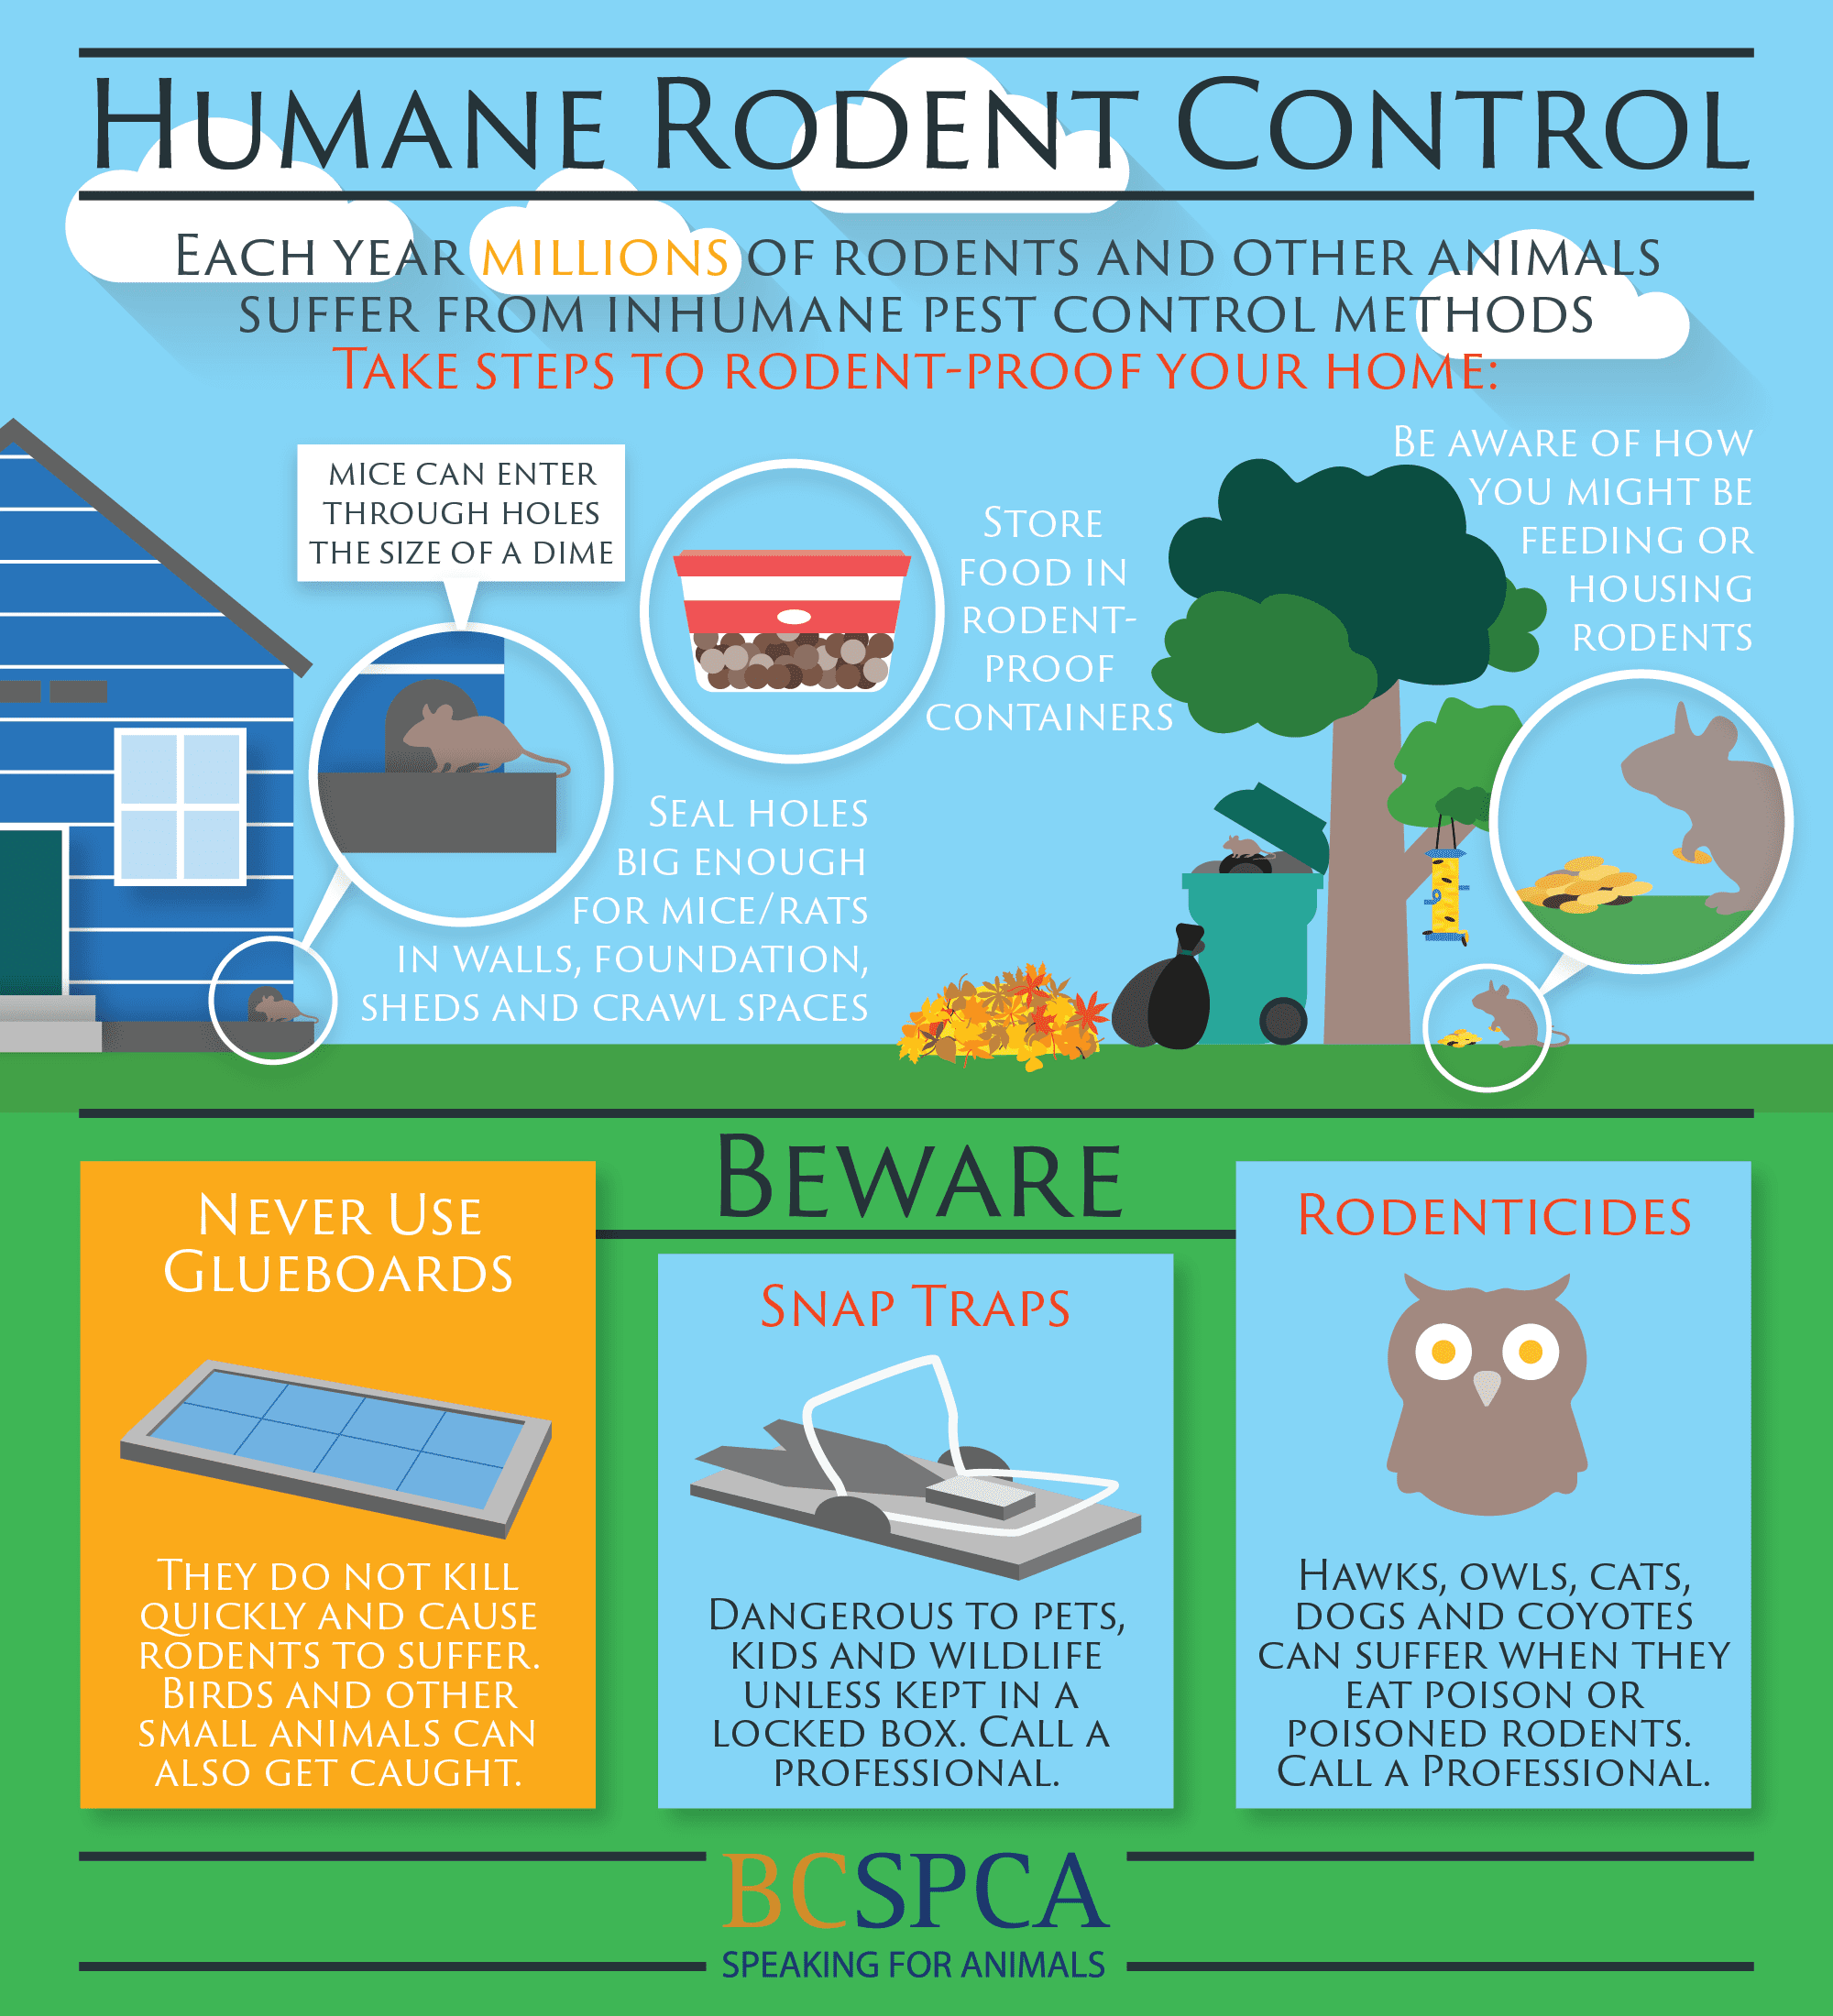 Humane Rodent Control